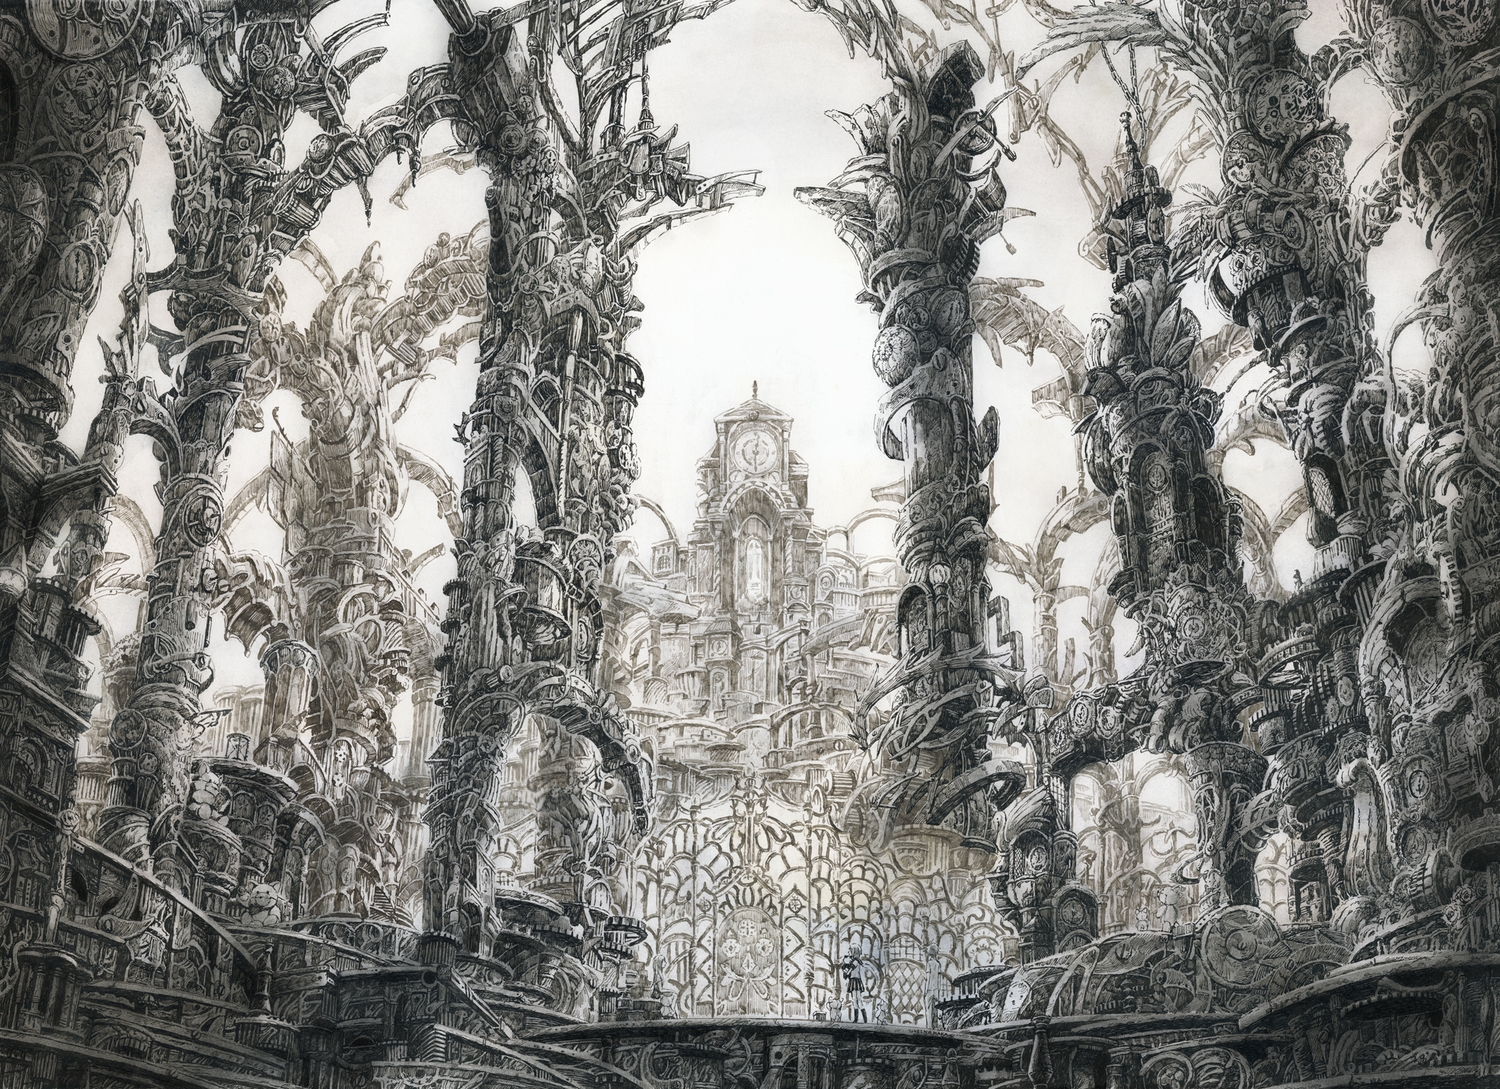 12-Column-Jungle-Mita-Mitauzo-実-田-く-ら-Intricate-Japanese-Architectural-Drawings-www-designstack-co